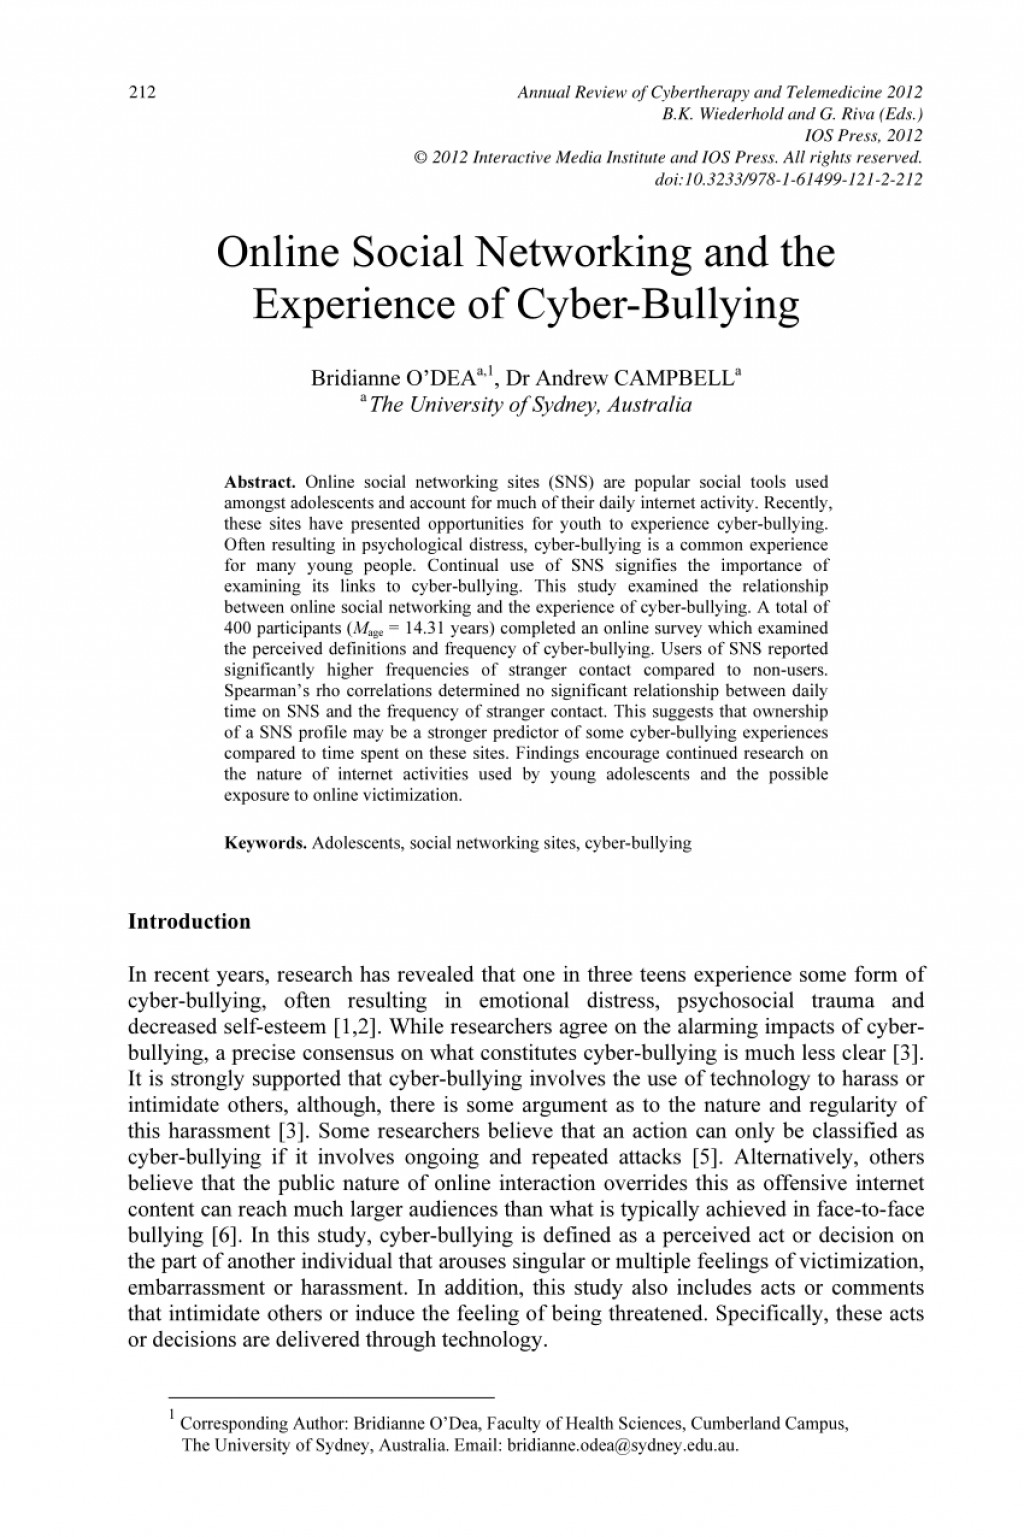 007 Cyberbullying Research Paper Abstract Phenomenal Large